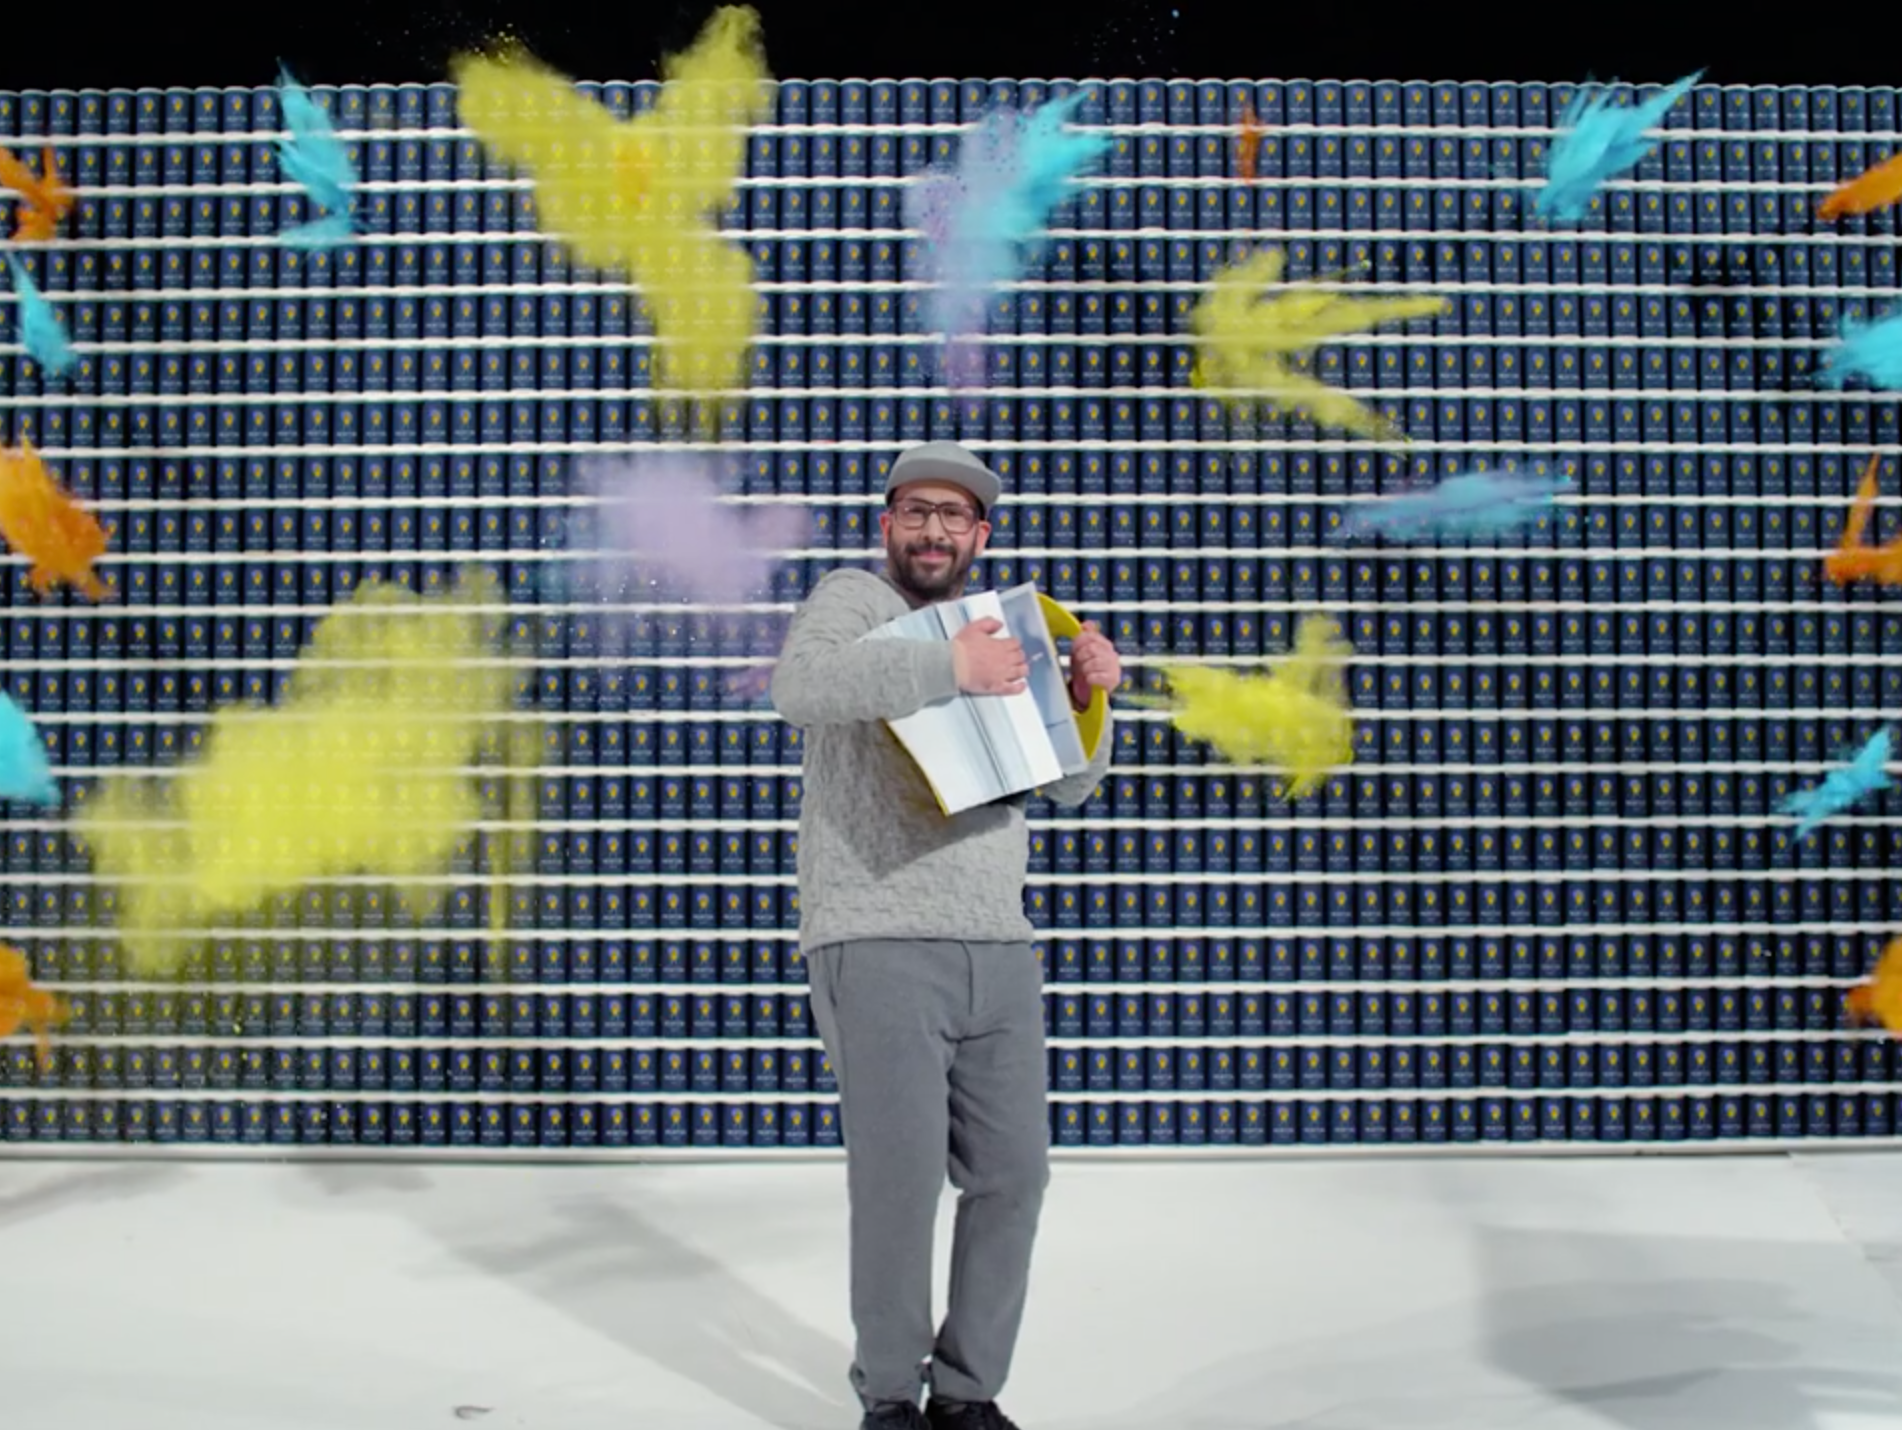 OK Go's New Music Video is 4.2 Seconds of Crazy Slo-Mo Footage